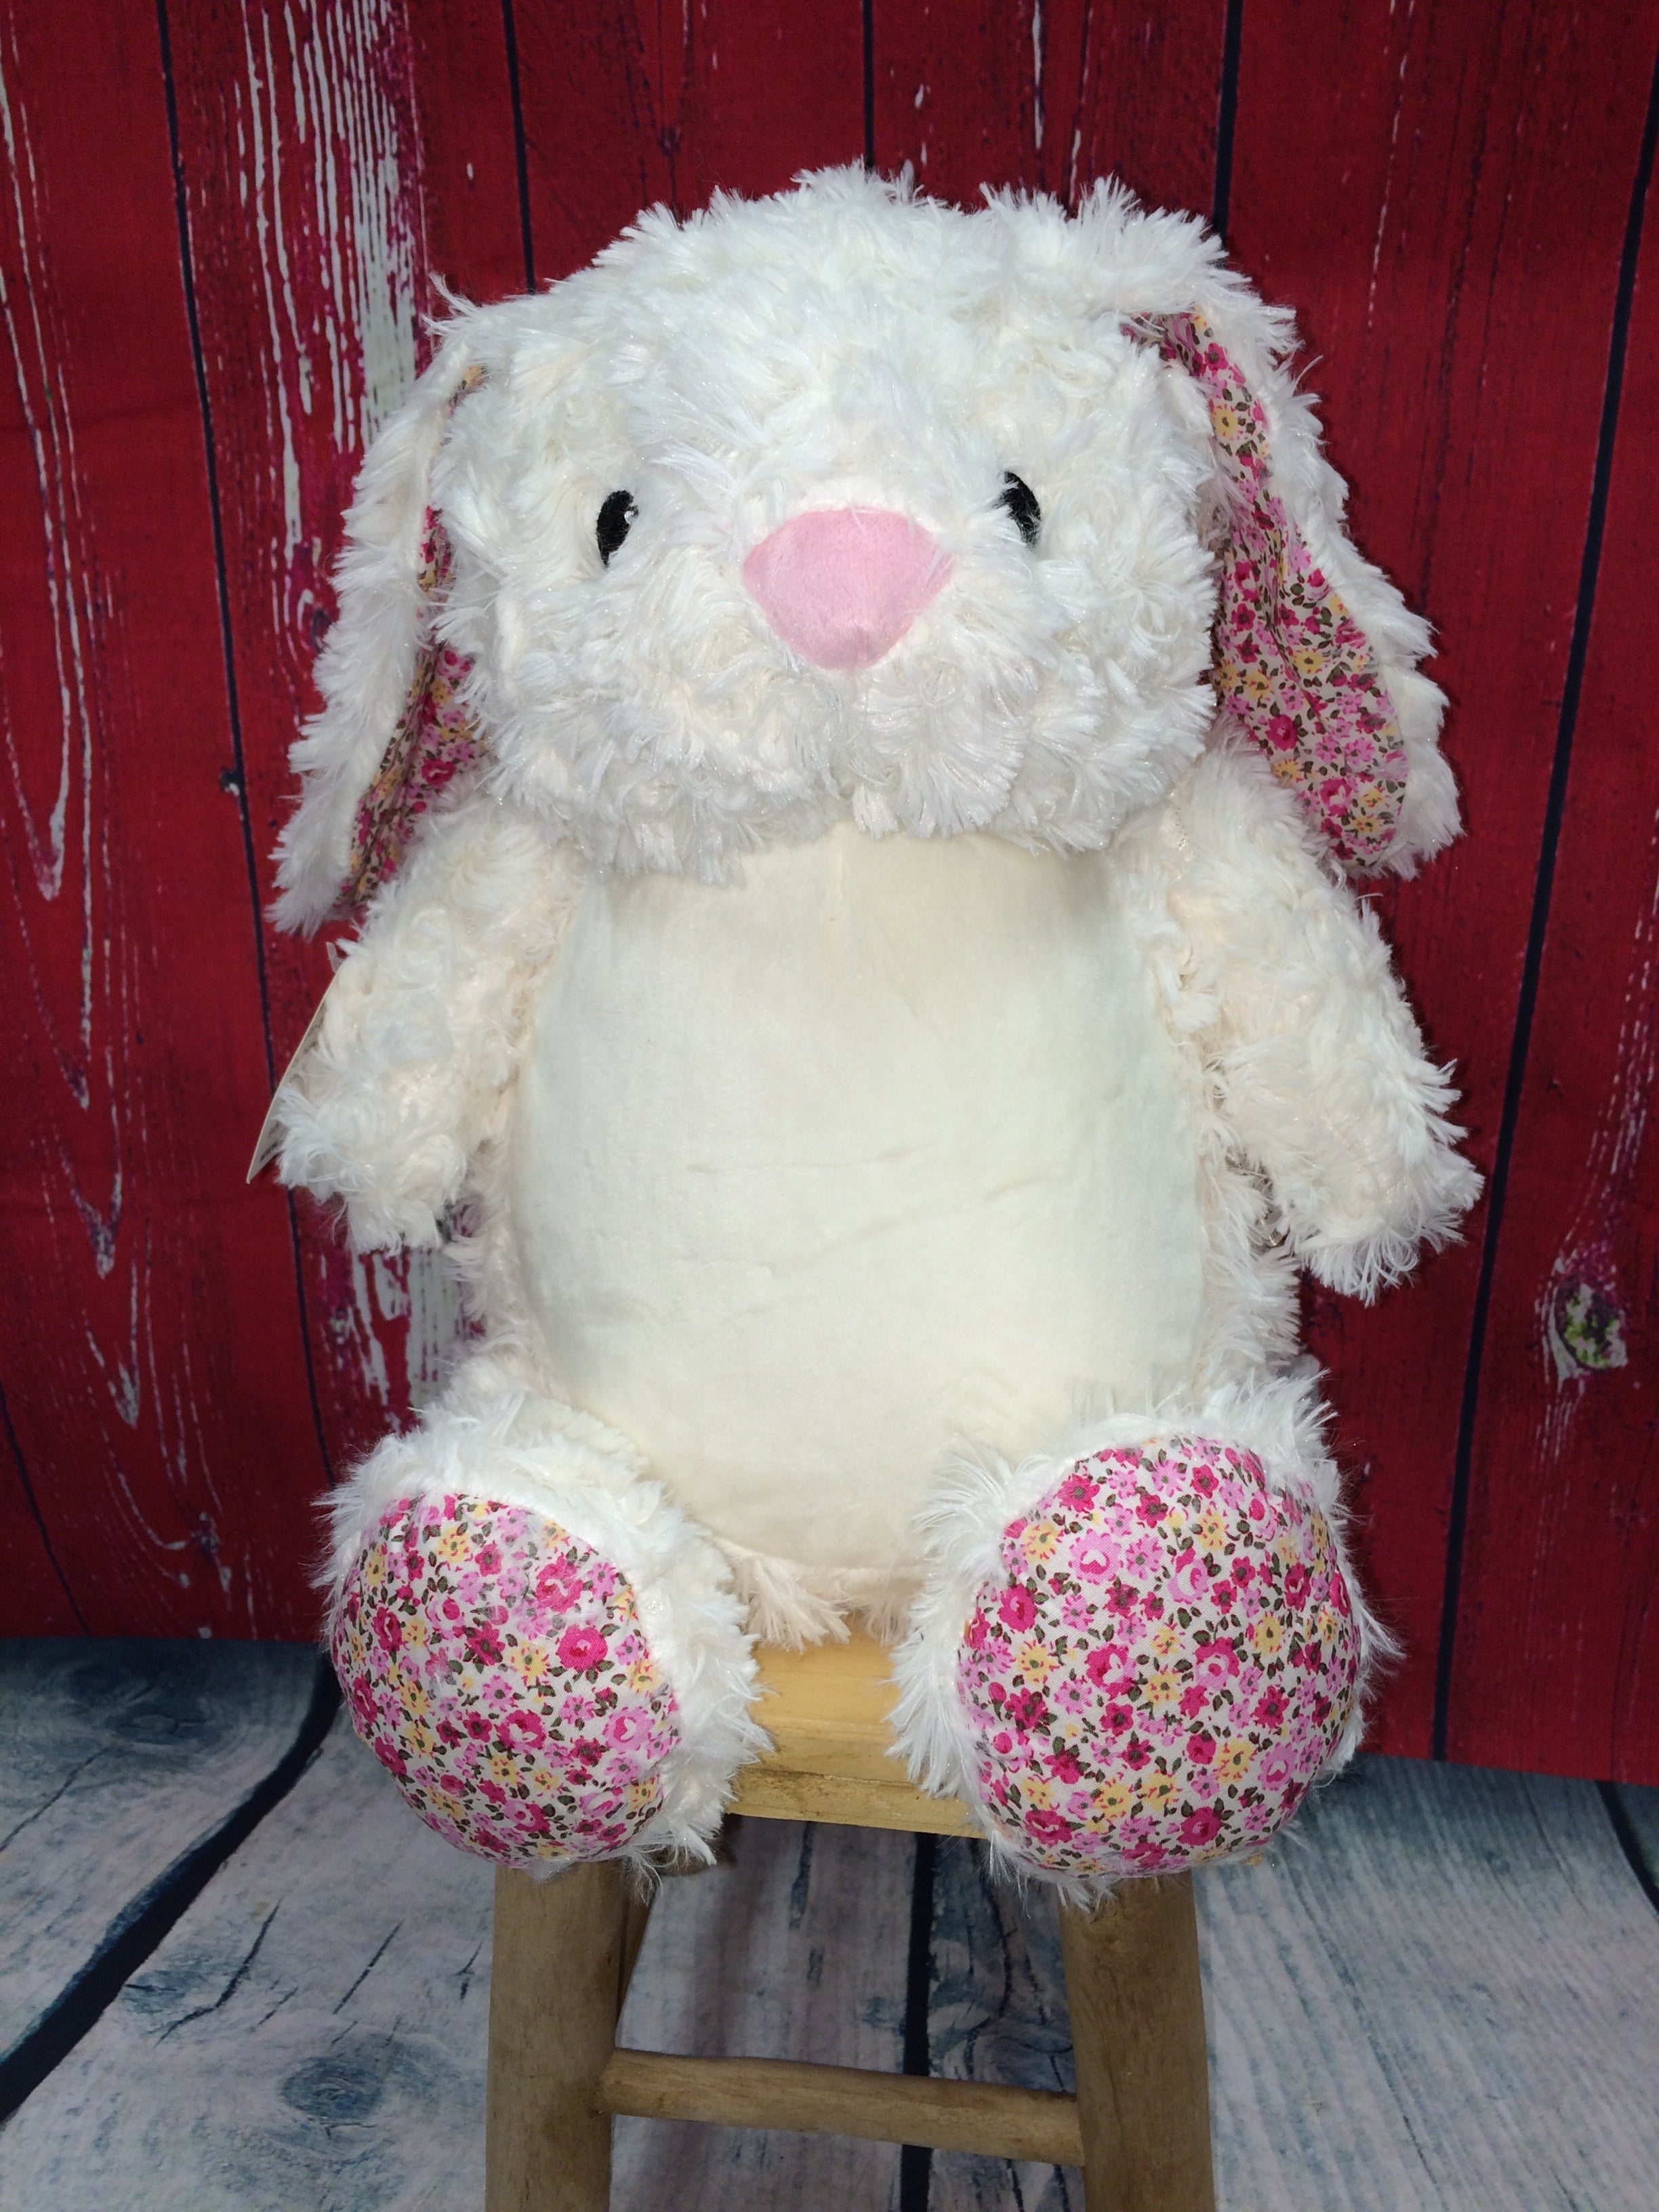 White Bunny with Pink Floral Accents Stuffie with Custom Embroidery